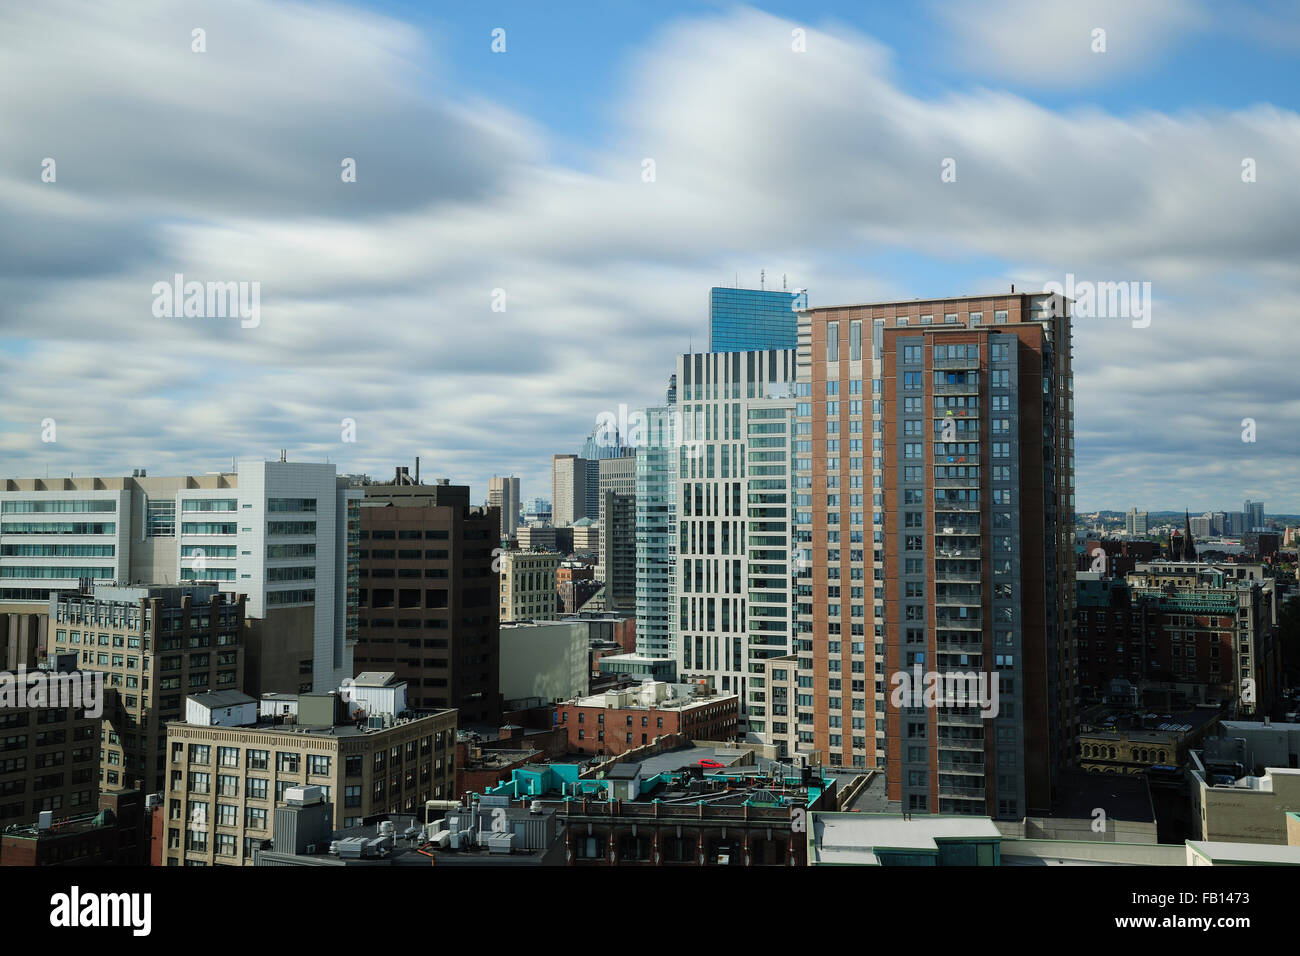 Clouds over modern city - Stock Image